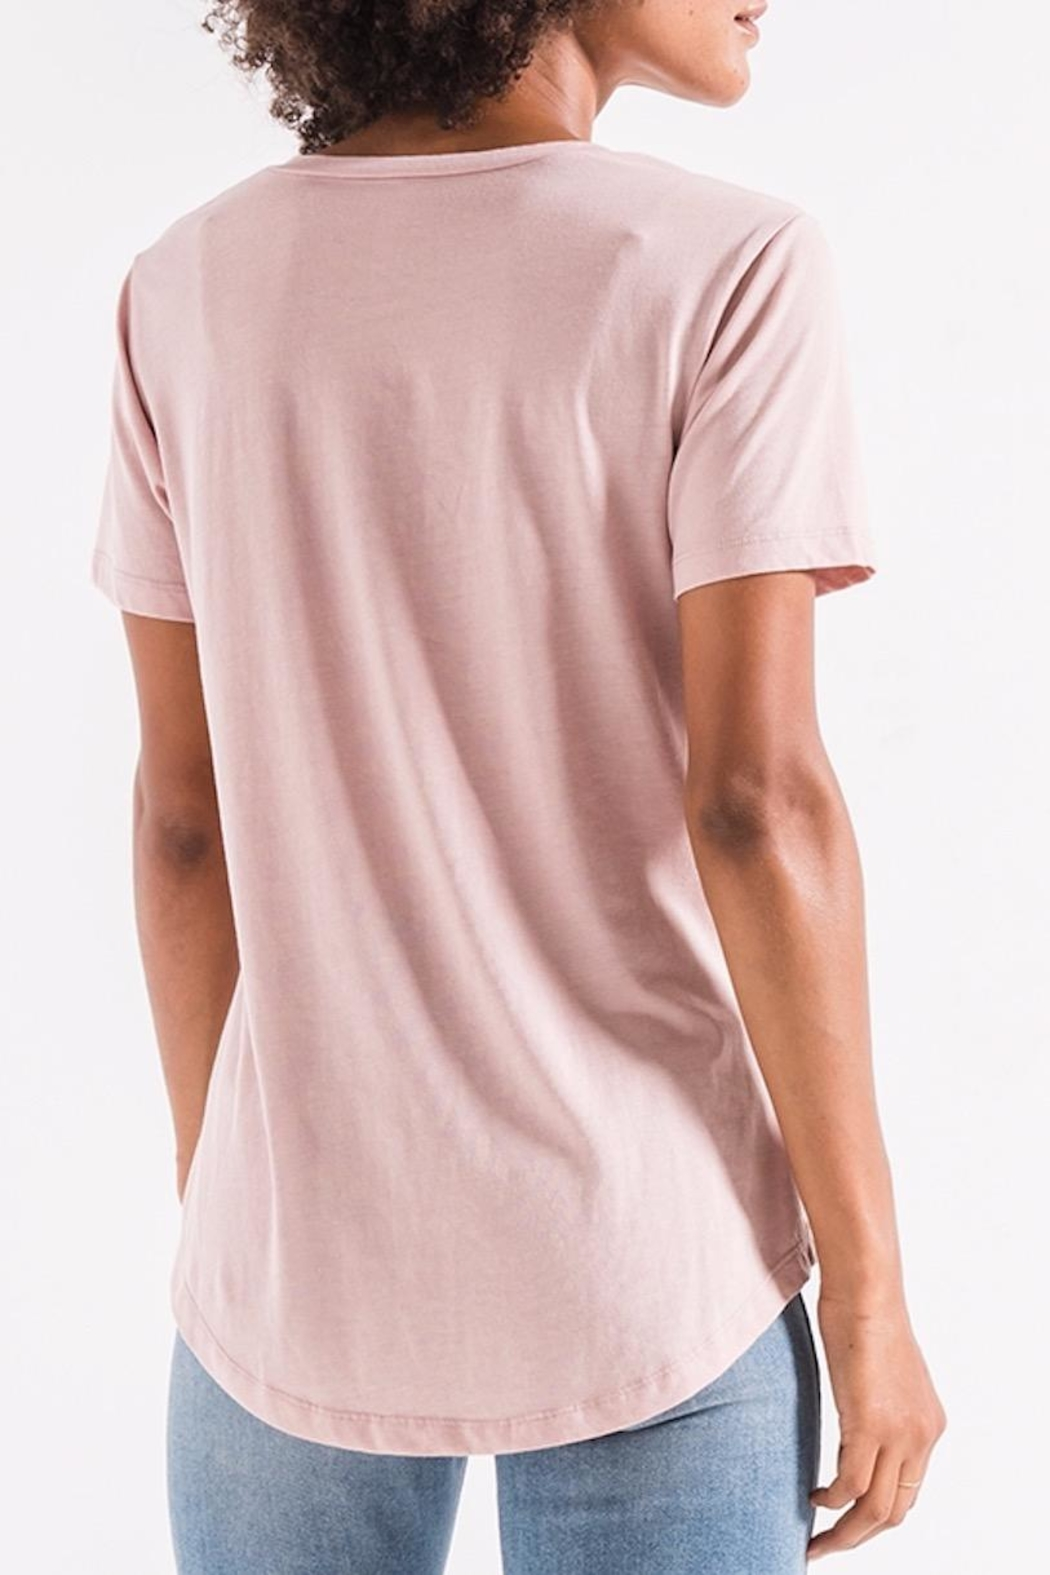 z supply Mauve Pocket Tee - Front Full Image